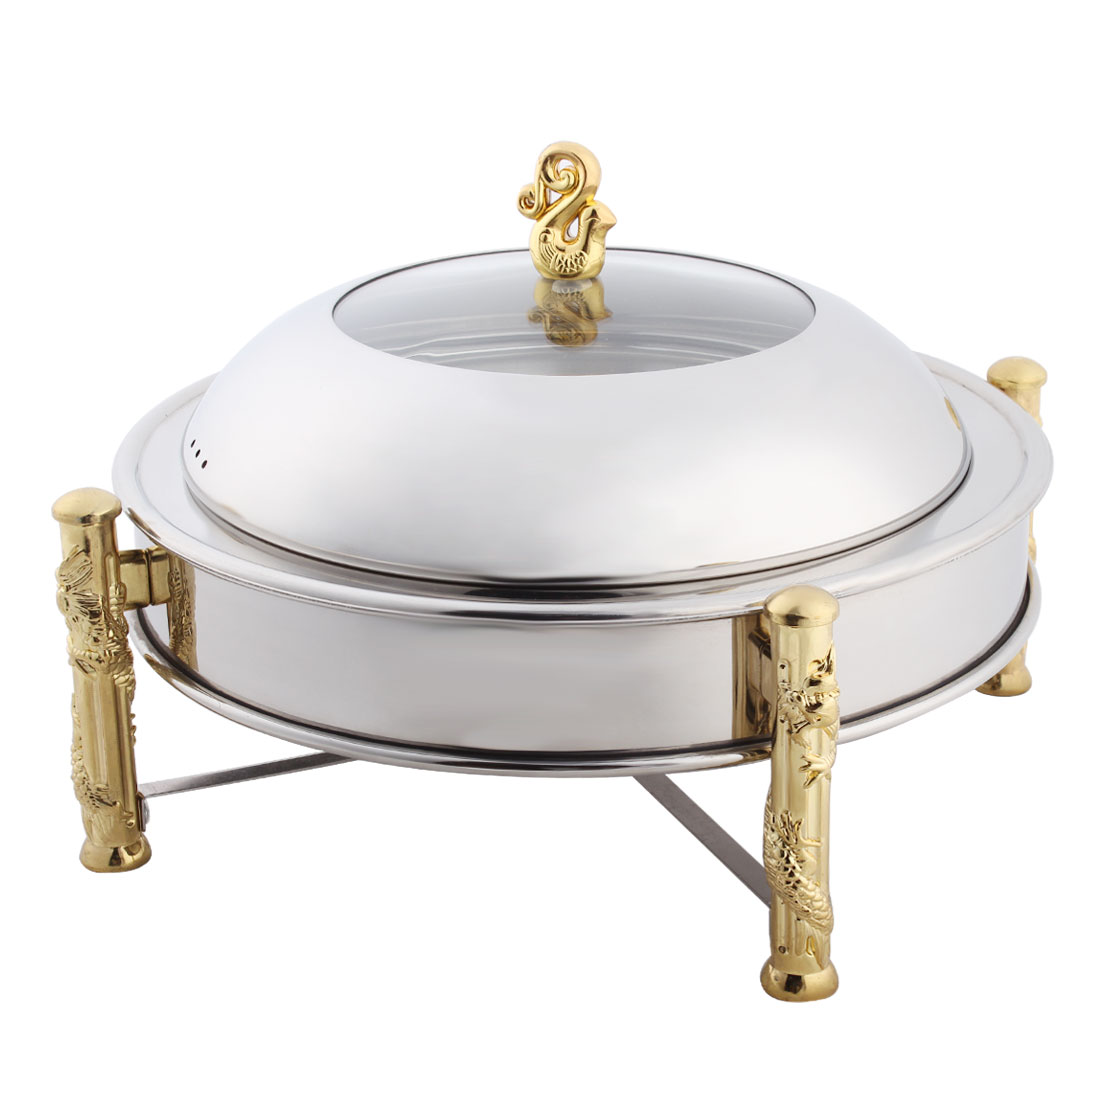 Household Metal Round Shaped Food Dish Cookware Holder Chafer Pan Silver Tone 27cm Dia